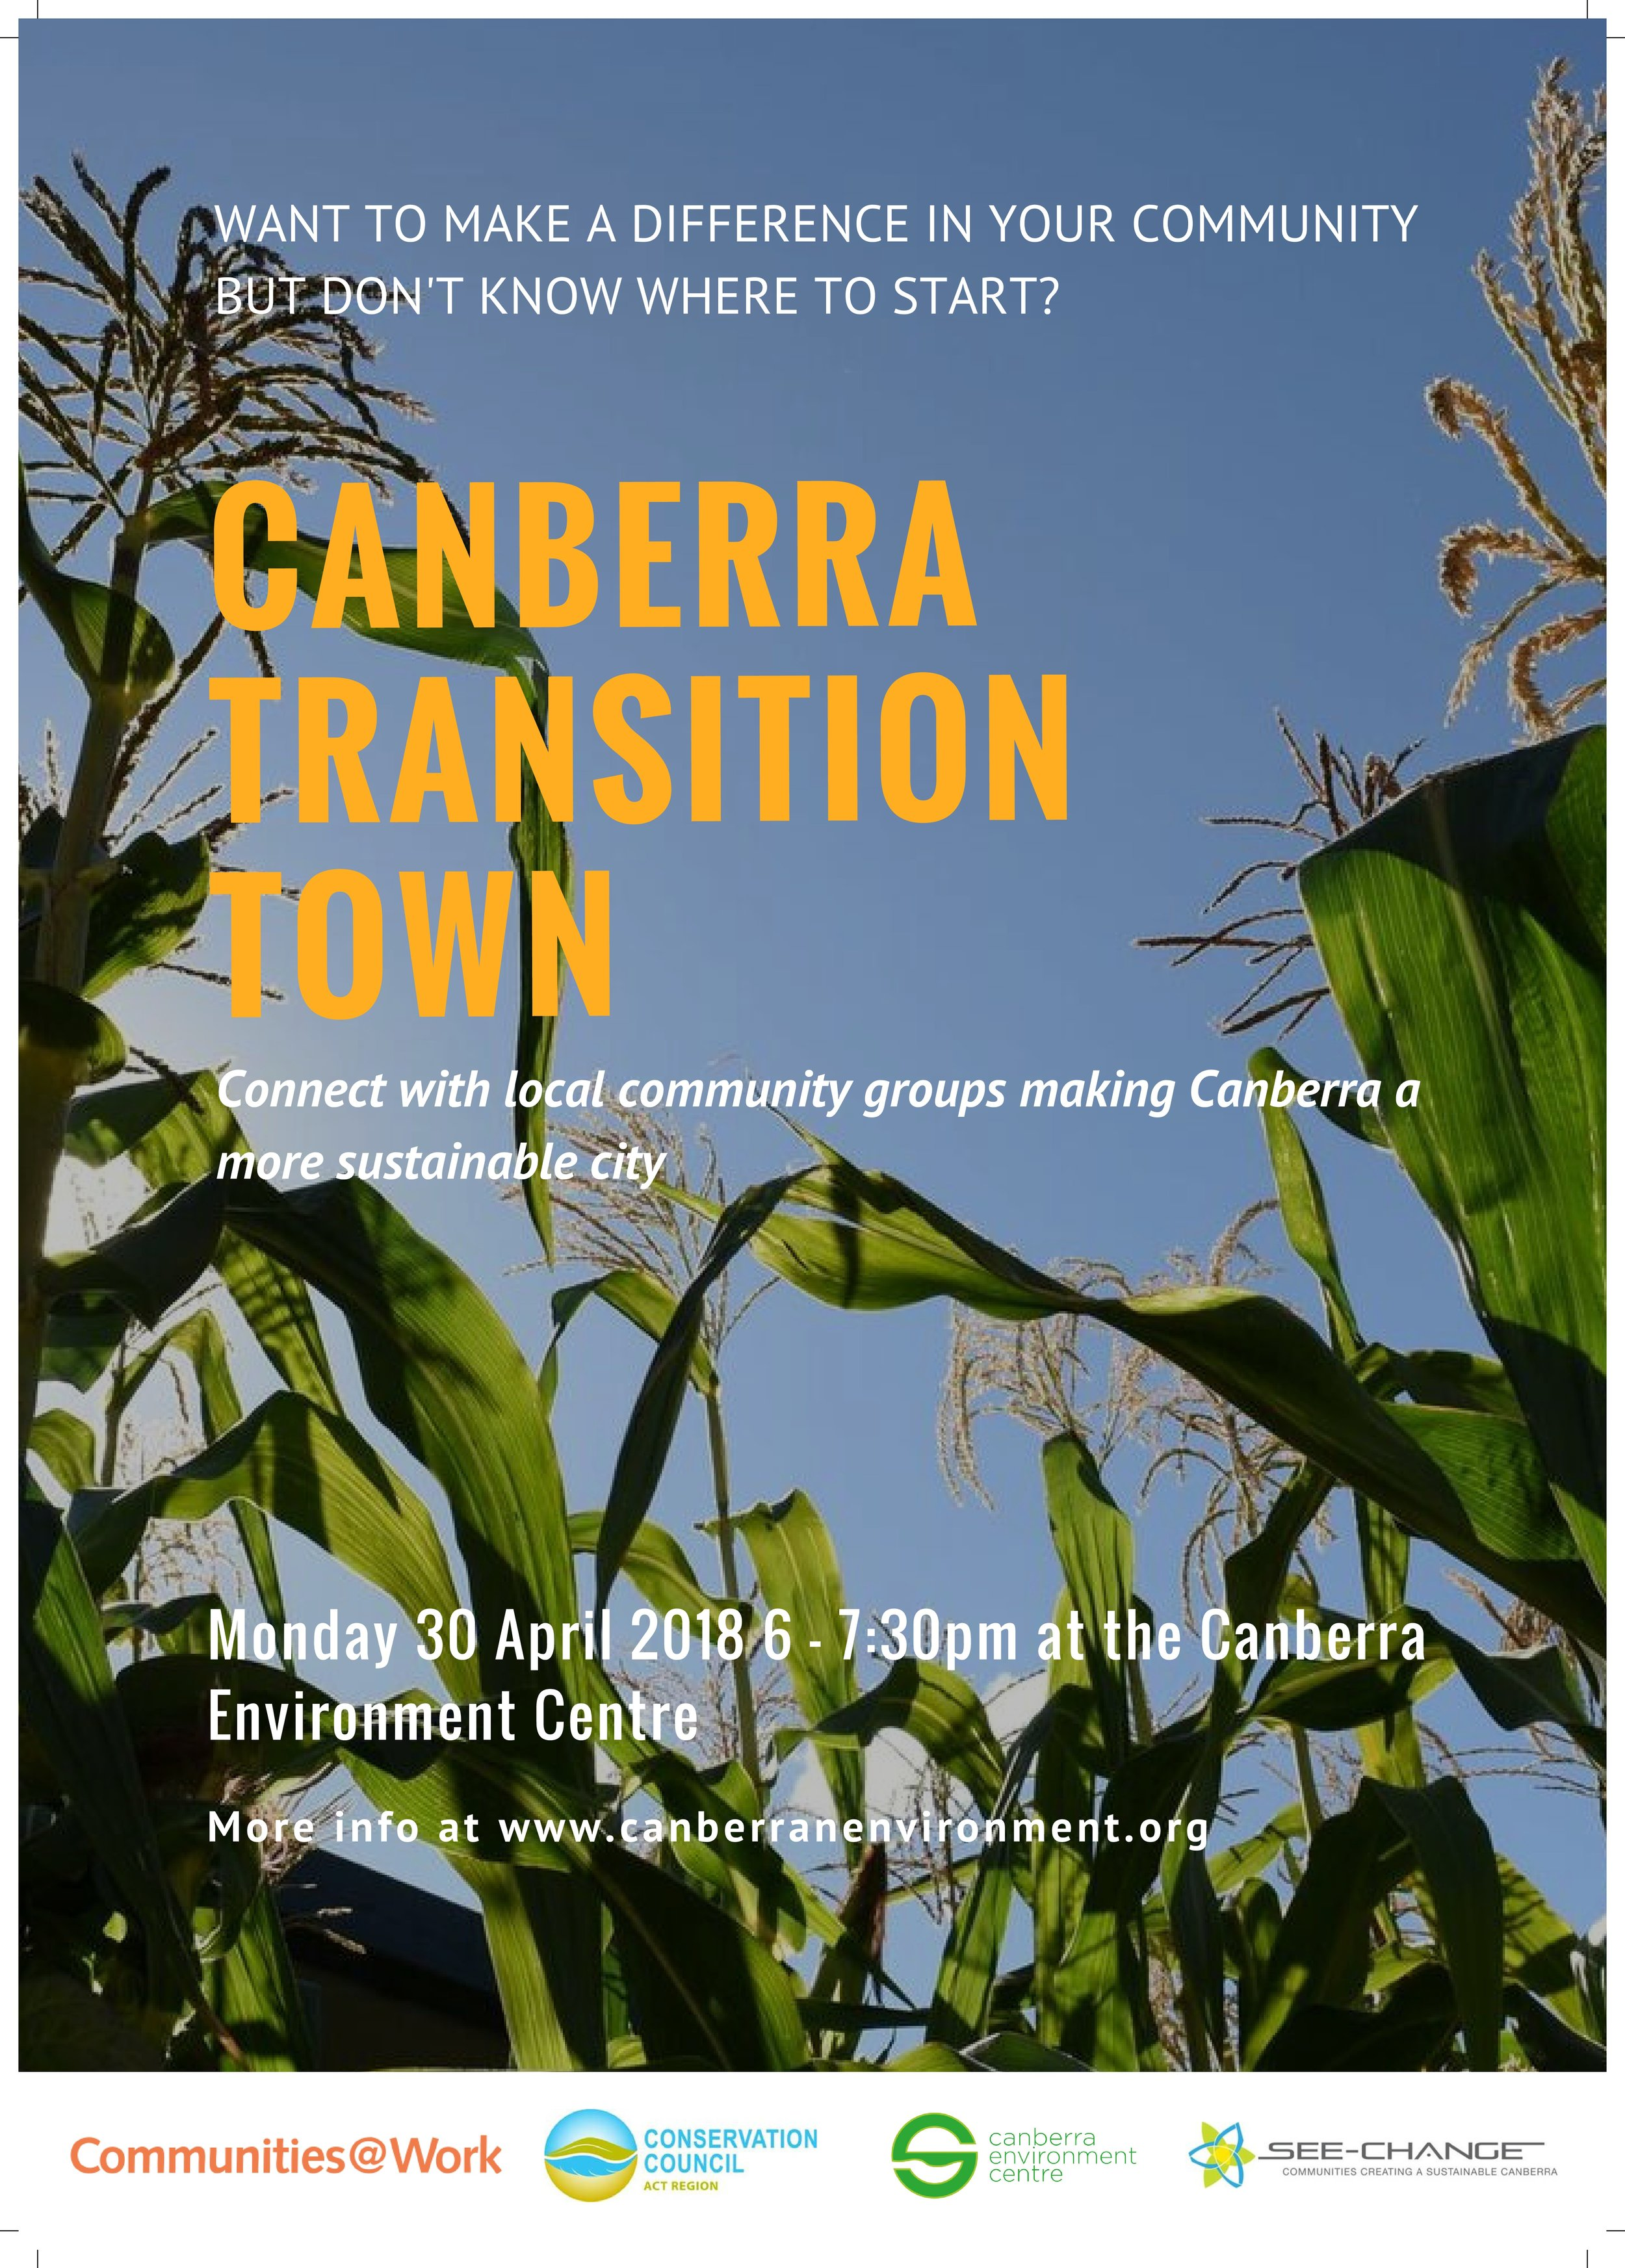 Canberra Transition Town